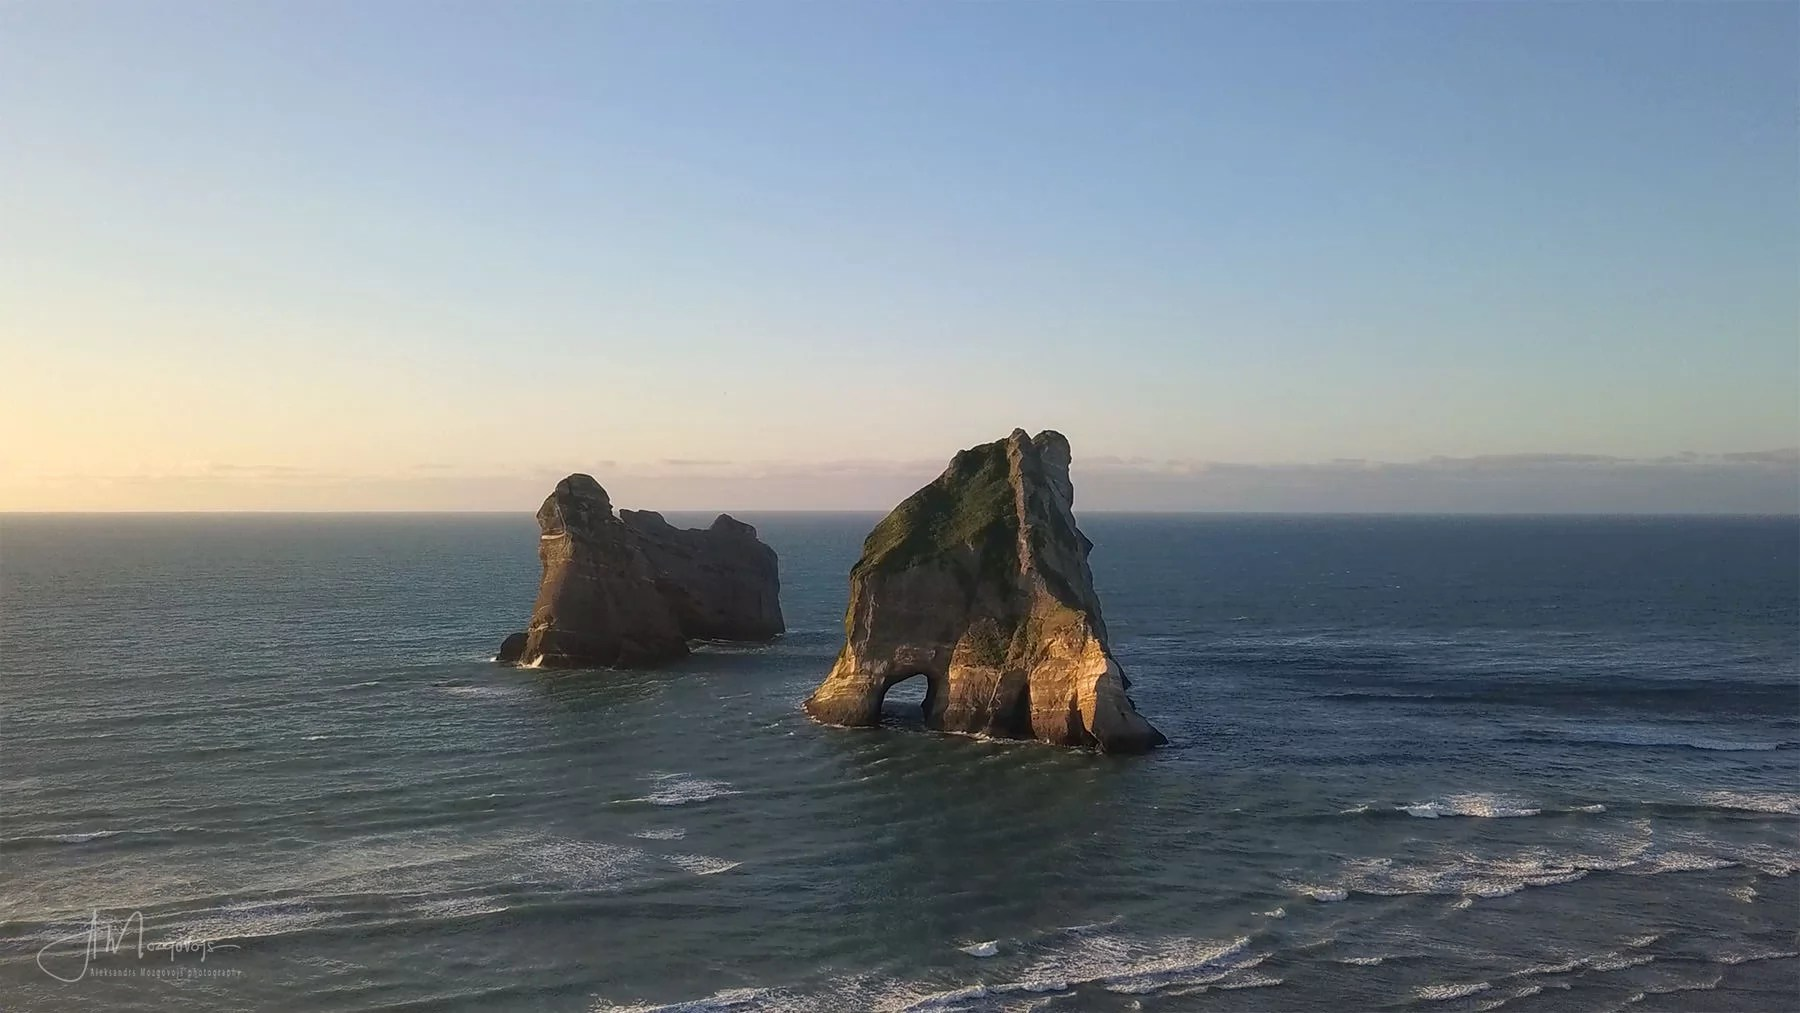 Wharariki Beach at sunset